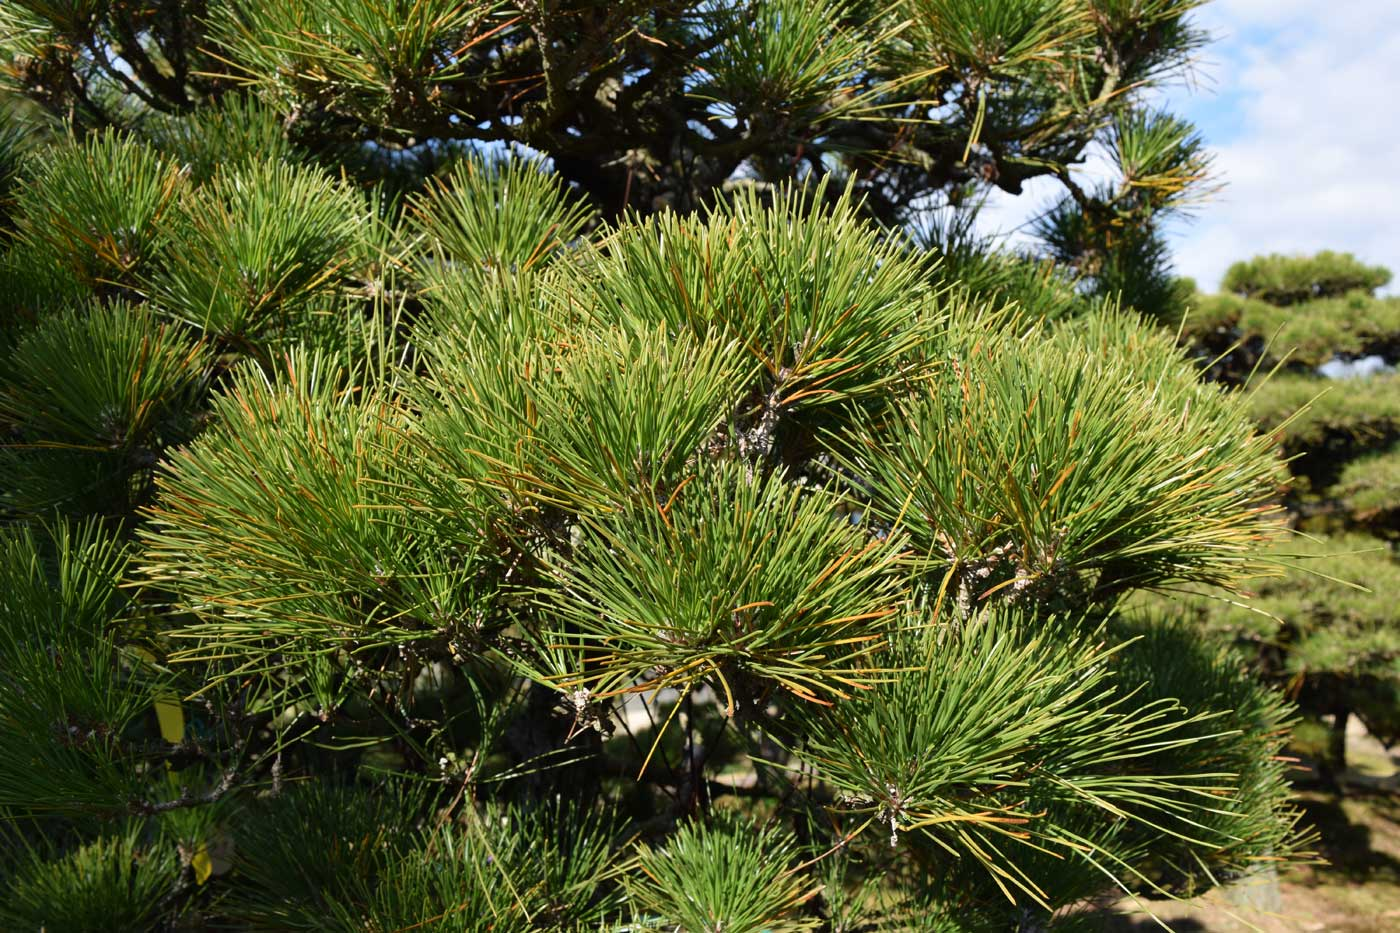 Branches of <i>Pinus thunbergii</i> BEFORE <i>momiage</i>.